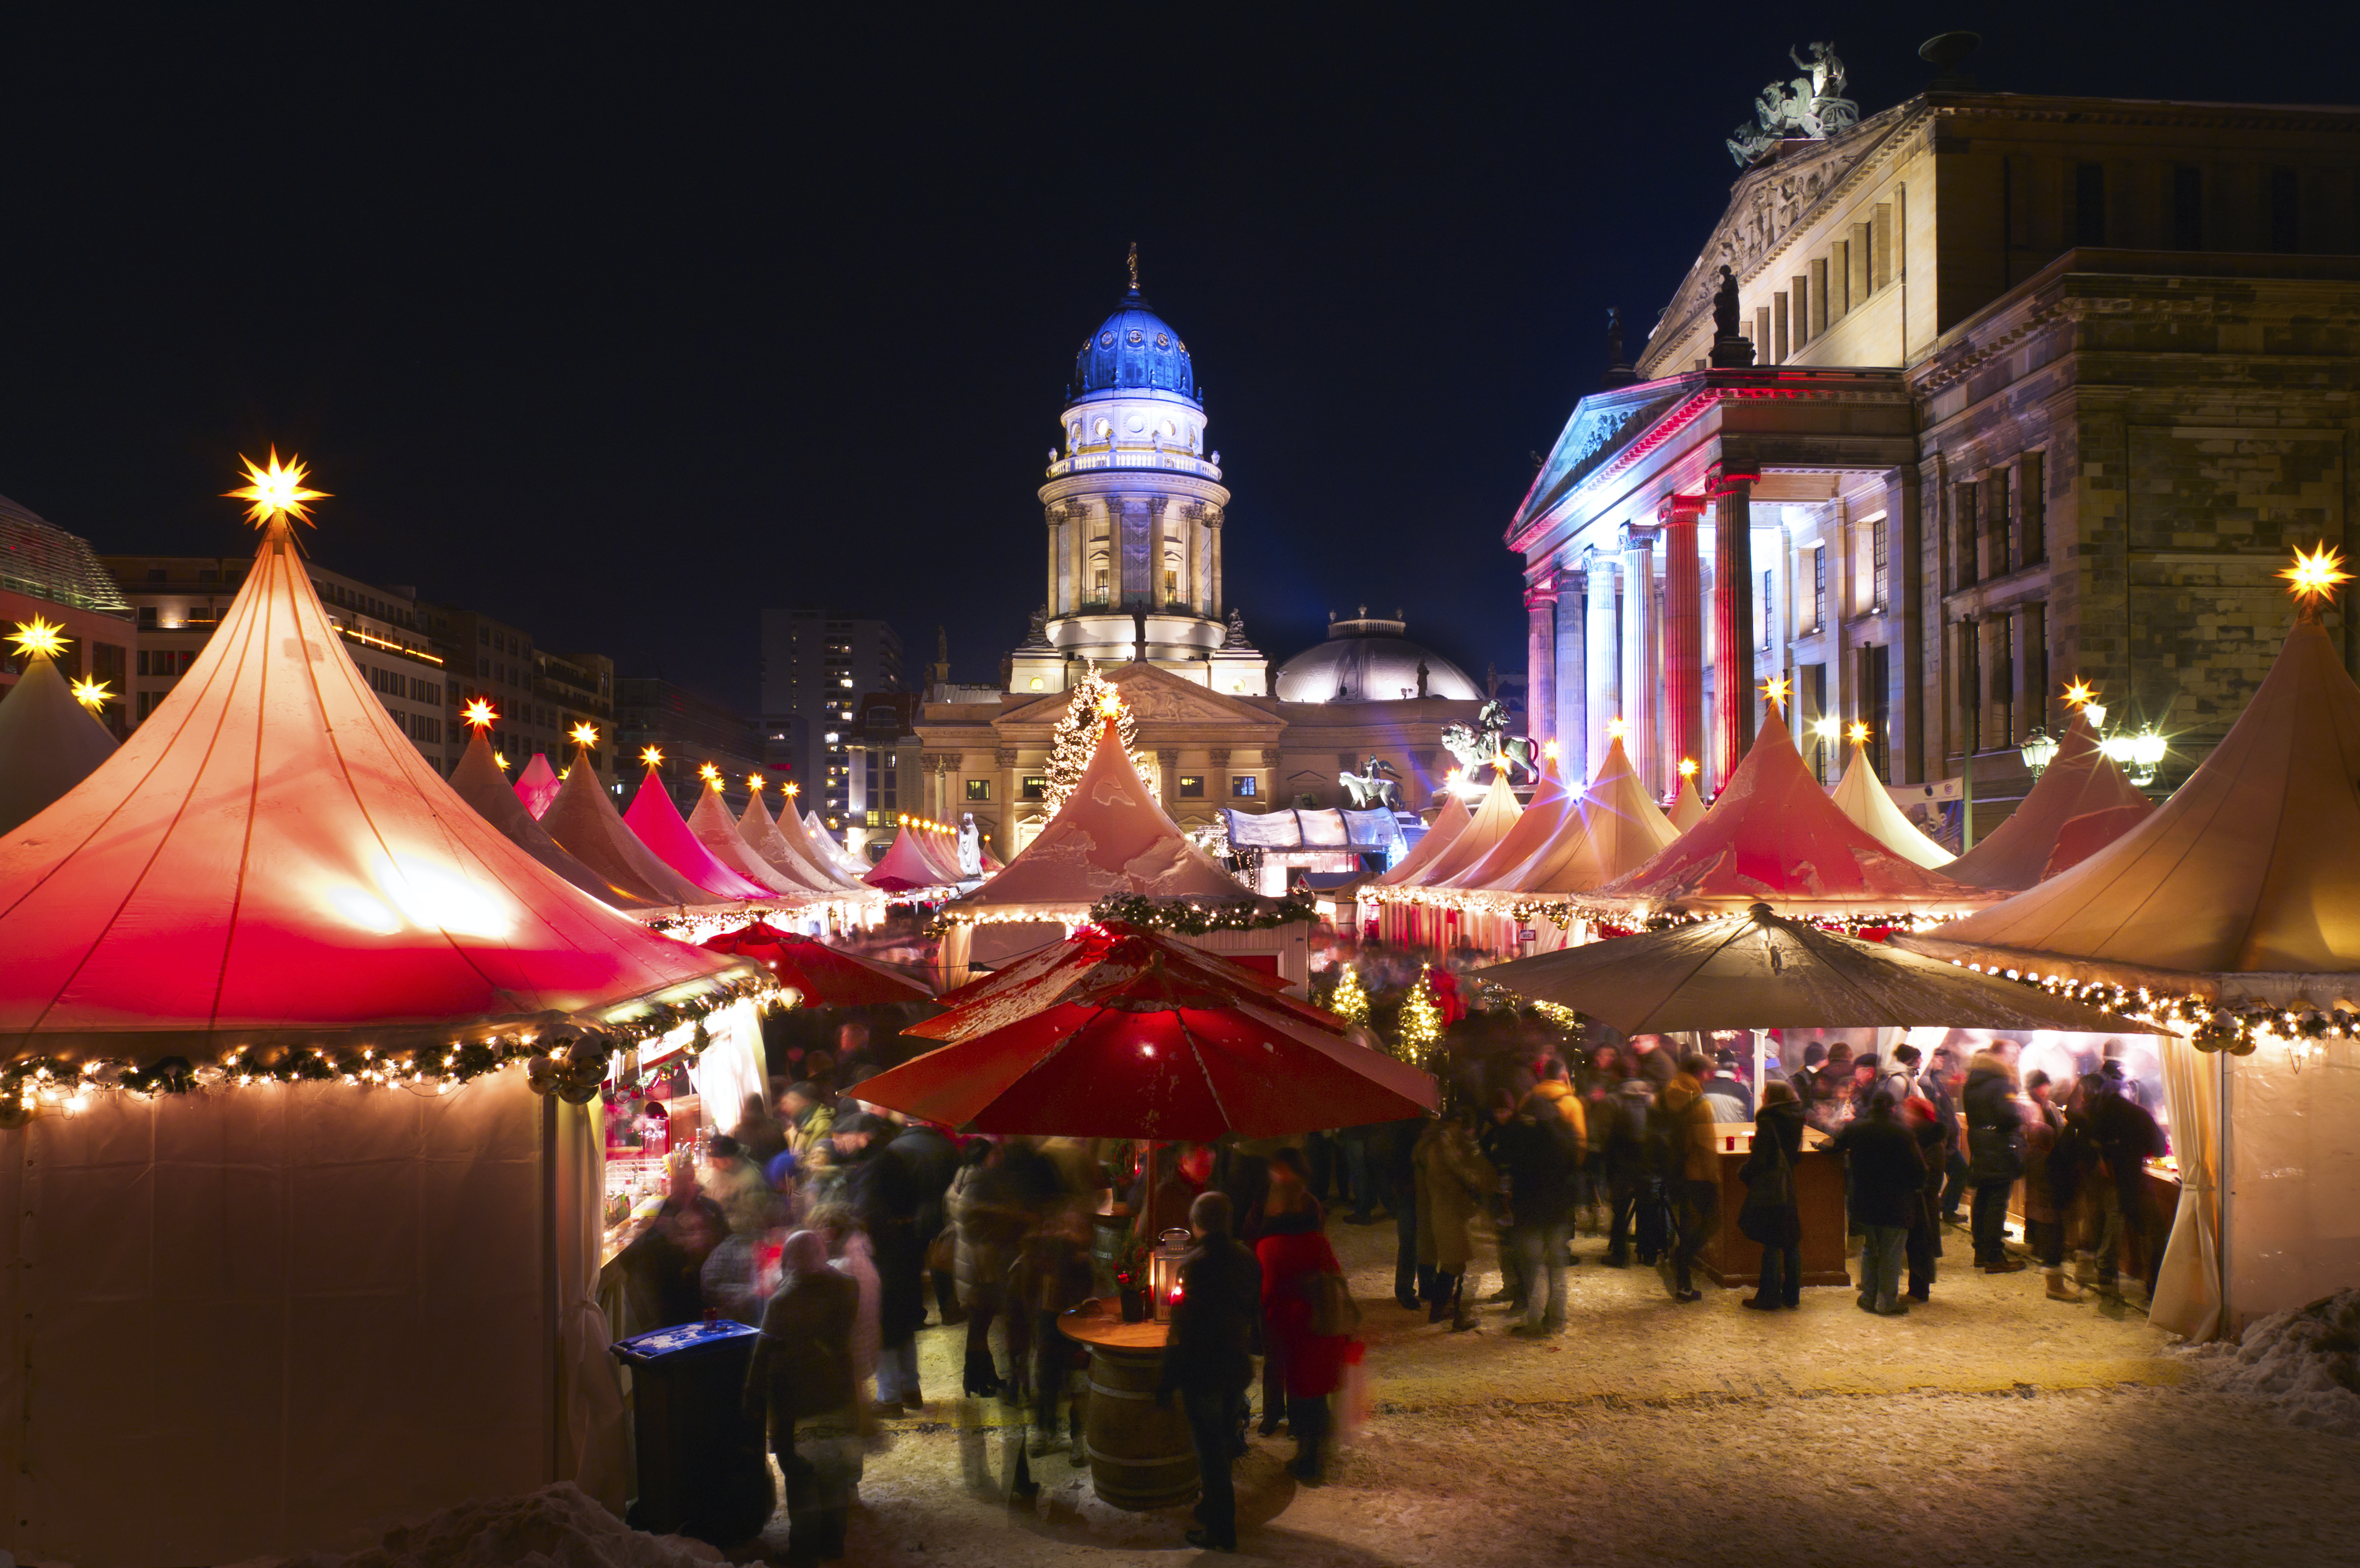 Which Country Hosts Striezelmarkt A Christmas Market Thats Been Held Since 1434.Germany Treats In The Christmas Markets Nz Herald